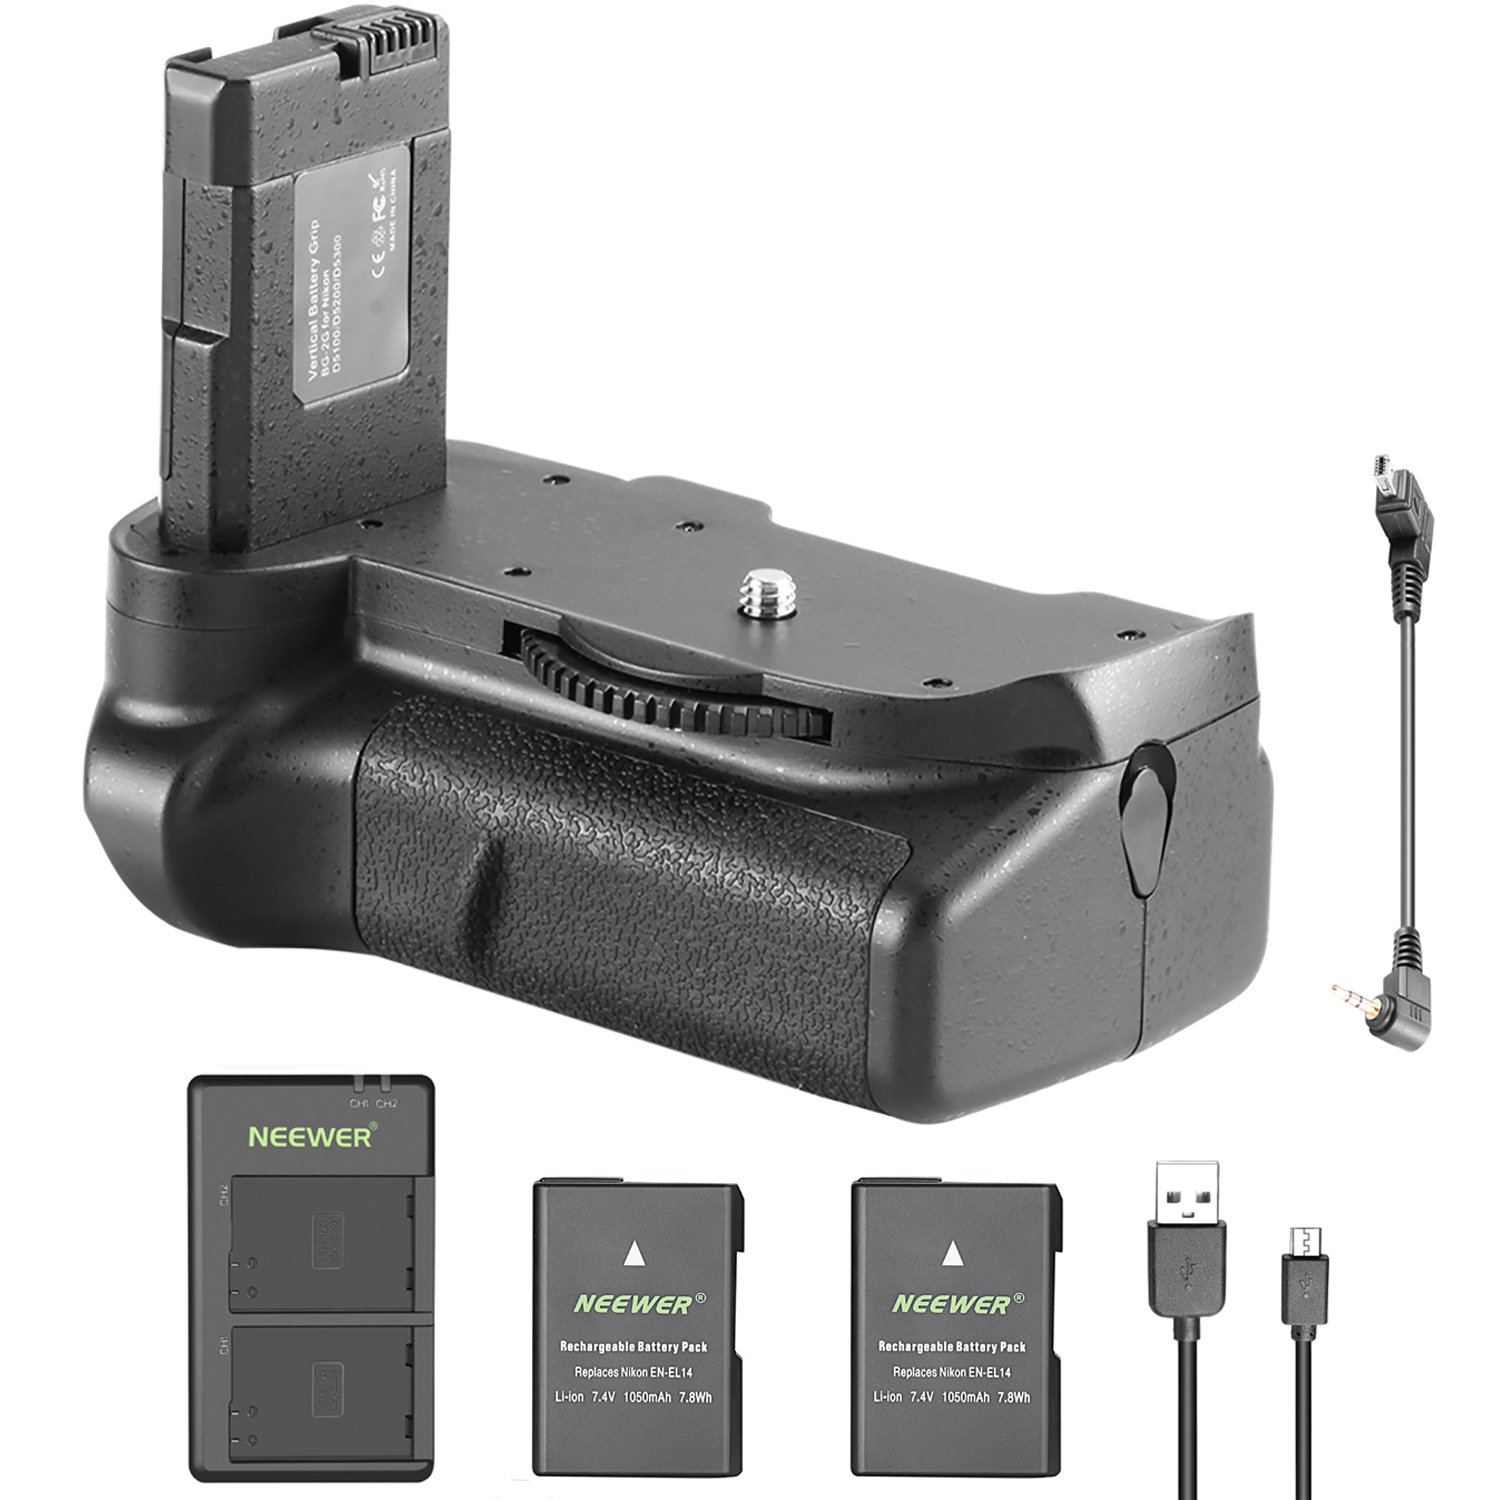 Neewer DSLR Vertical Battery Grip and 2 Pieces 1050mAh EN-EL14 Replacement Li-ion Battery with USB Input Dual Charger for Nikon D5100 5200 D5300 DSLR Camera 90091165@@os1